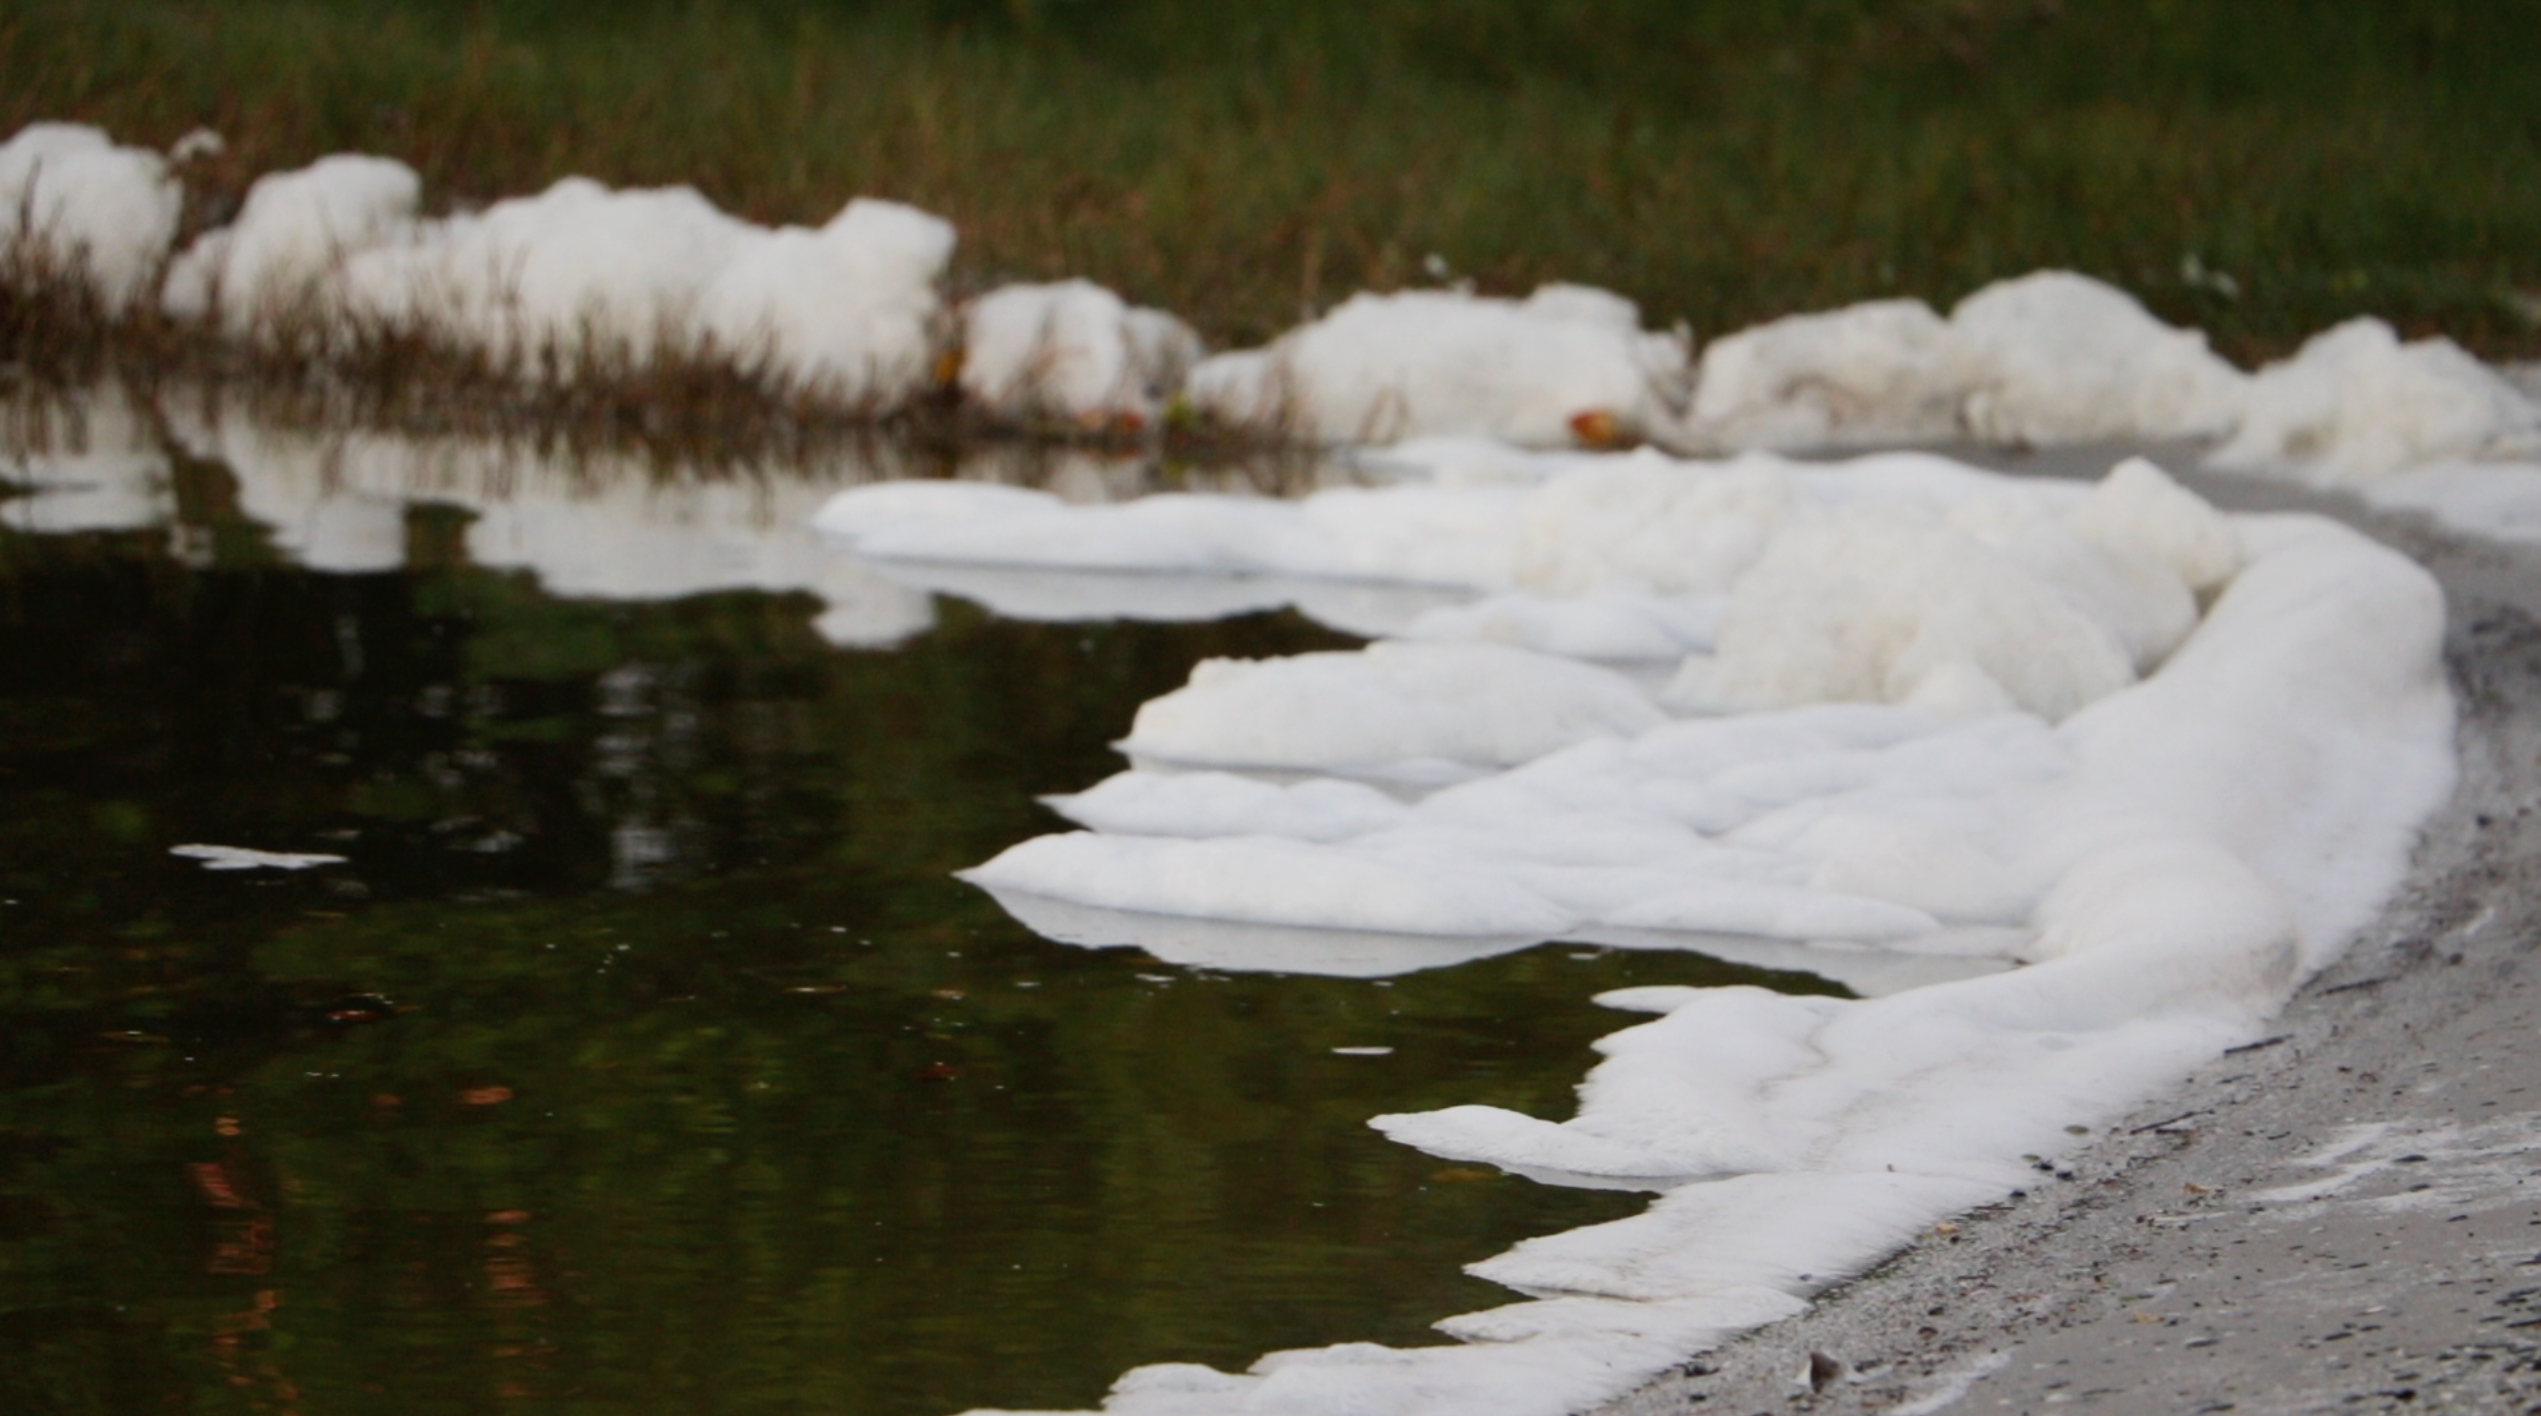 photo of foam on a Florida body of water, potentially caused by PFAS